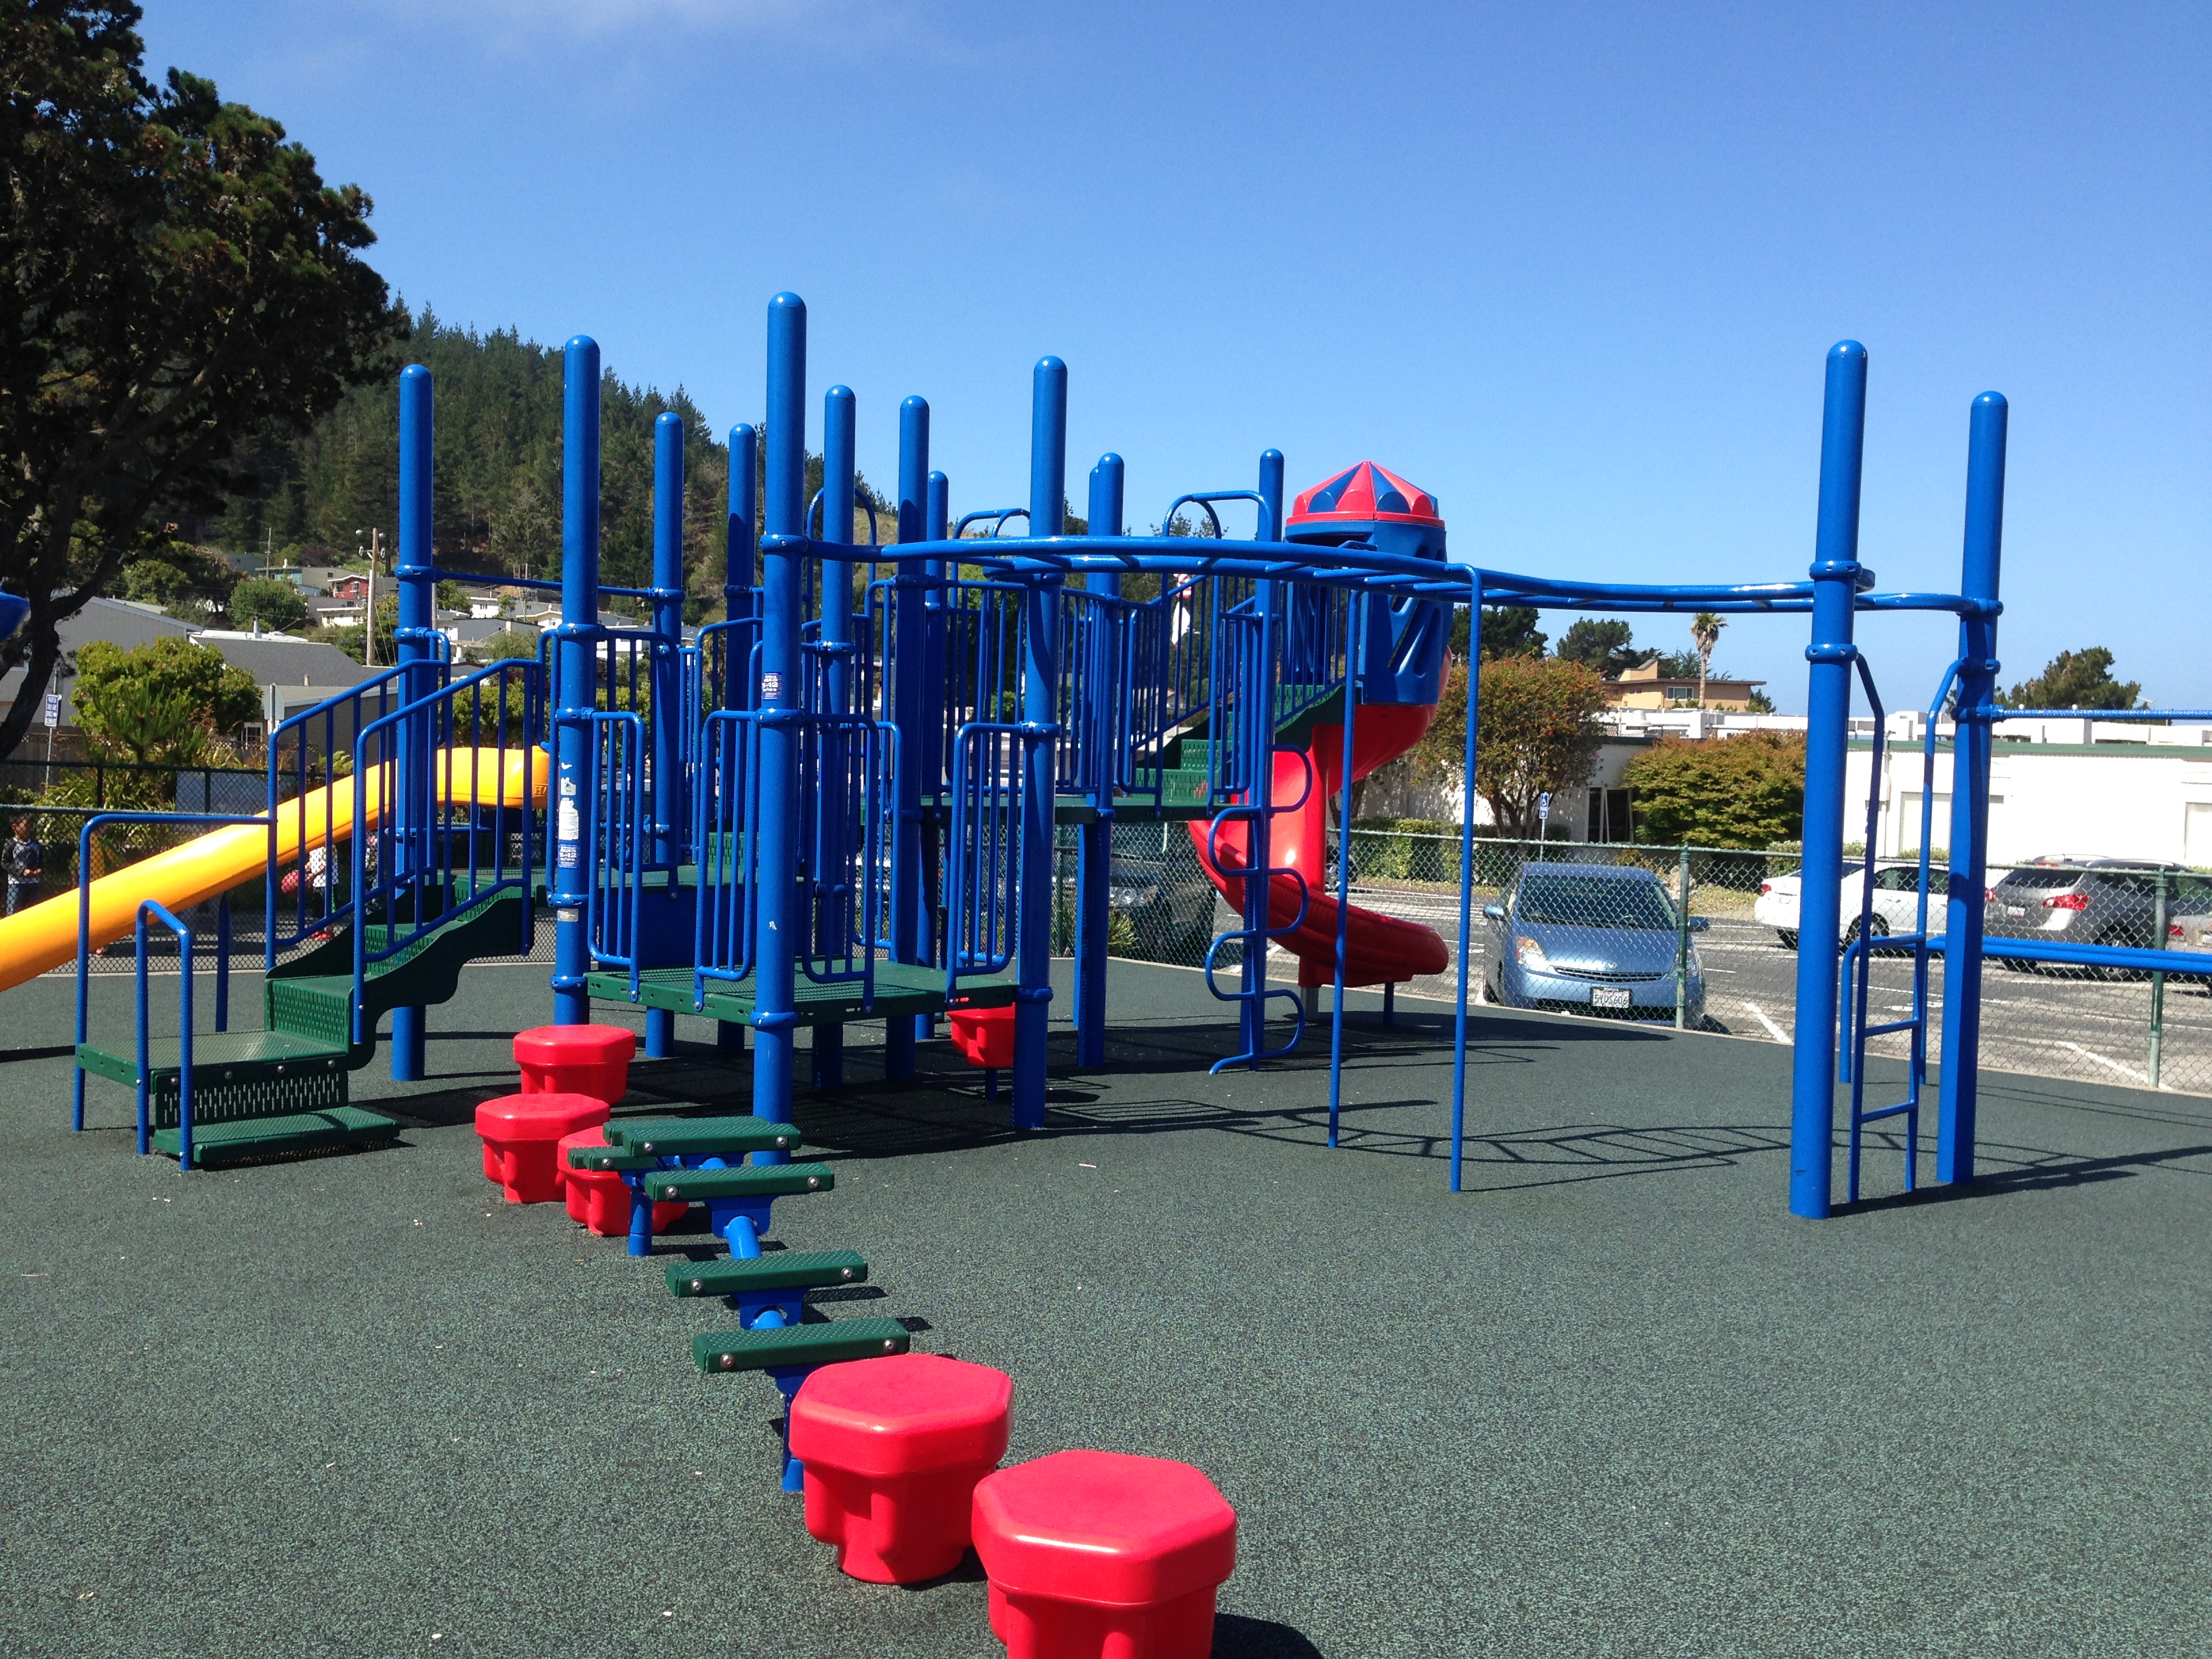 Improved and expanded playground